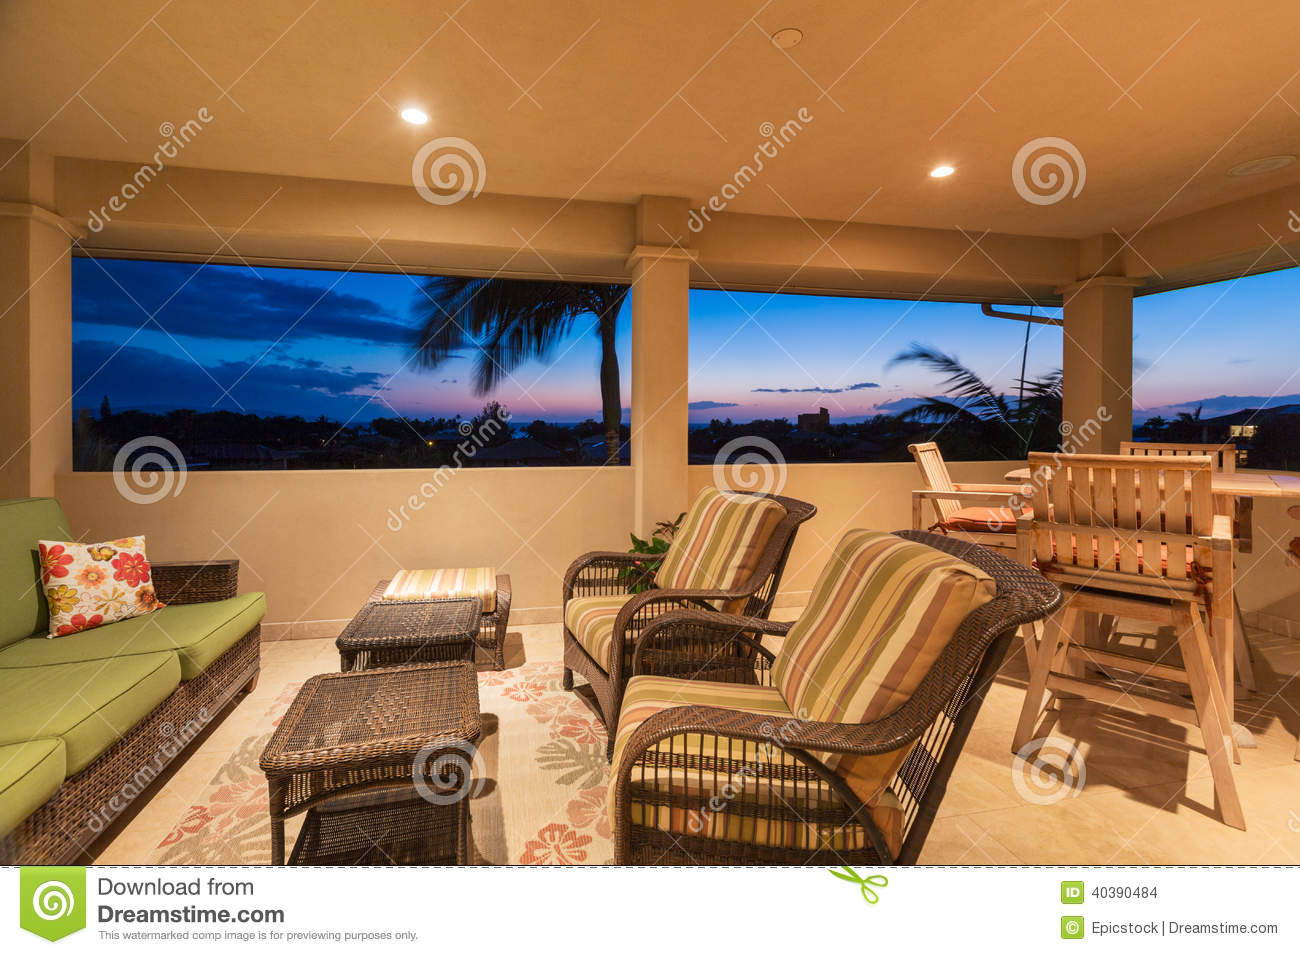 Rc Furniture Interior Design Stock Dealer ~ Deck and patio furniture at sunset stock photography